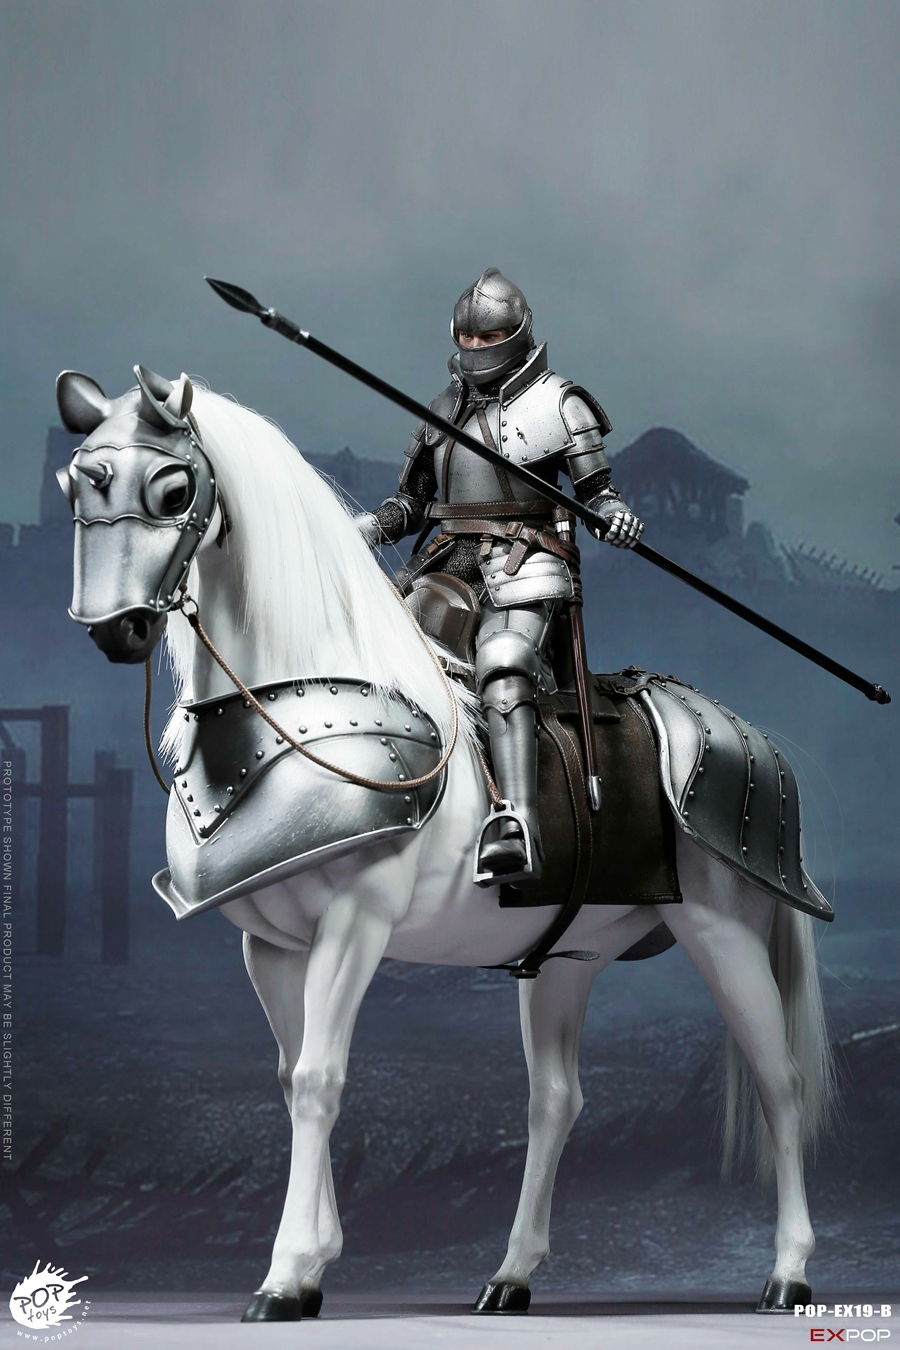 NEW PRODUCT: POPTOYS New Products: 1/6 St. Knights - Assault Edition & Triumph Edition & Iron Armor (POP-EX19 ABC) 16461510